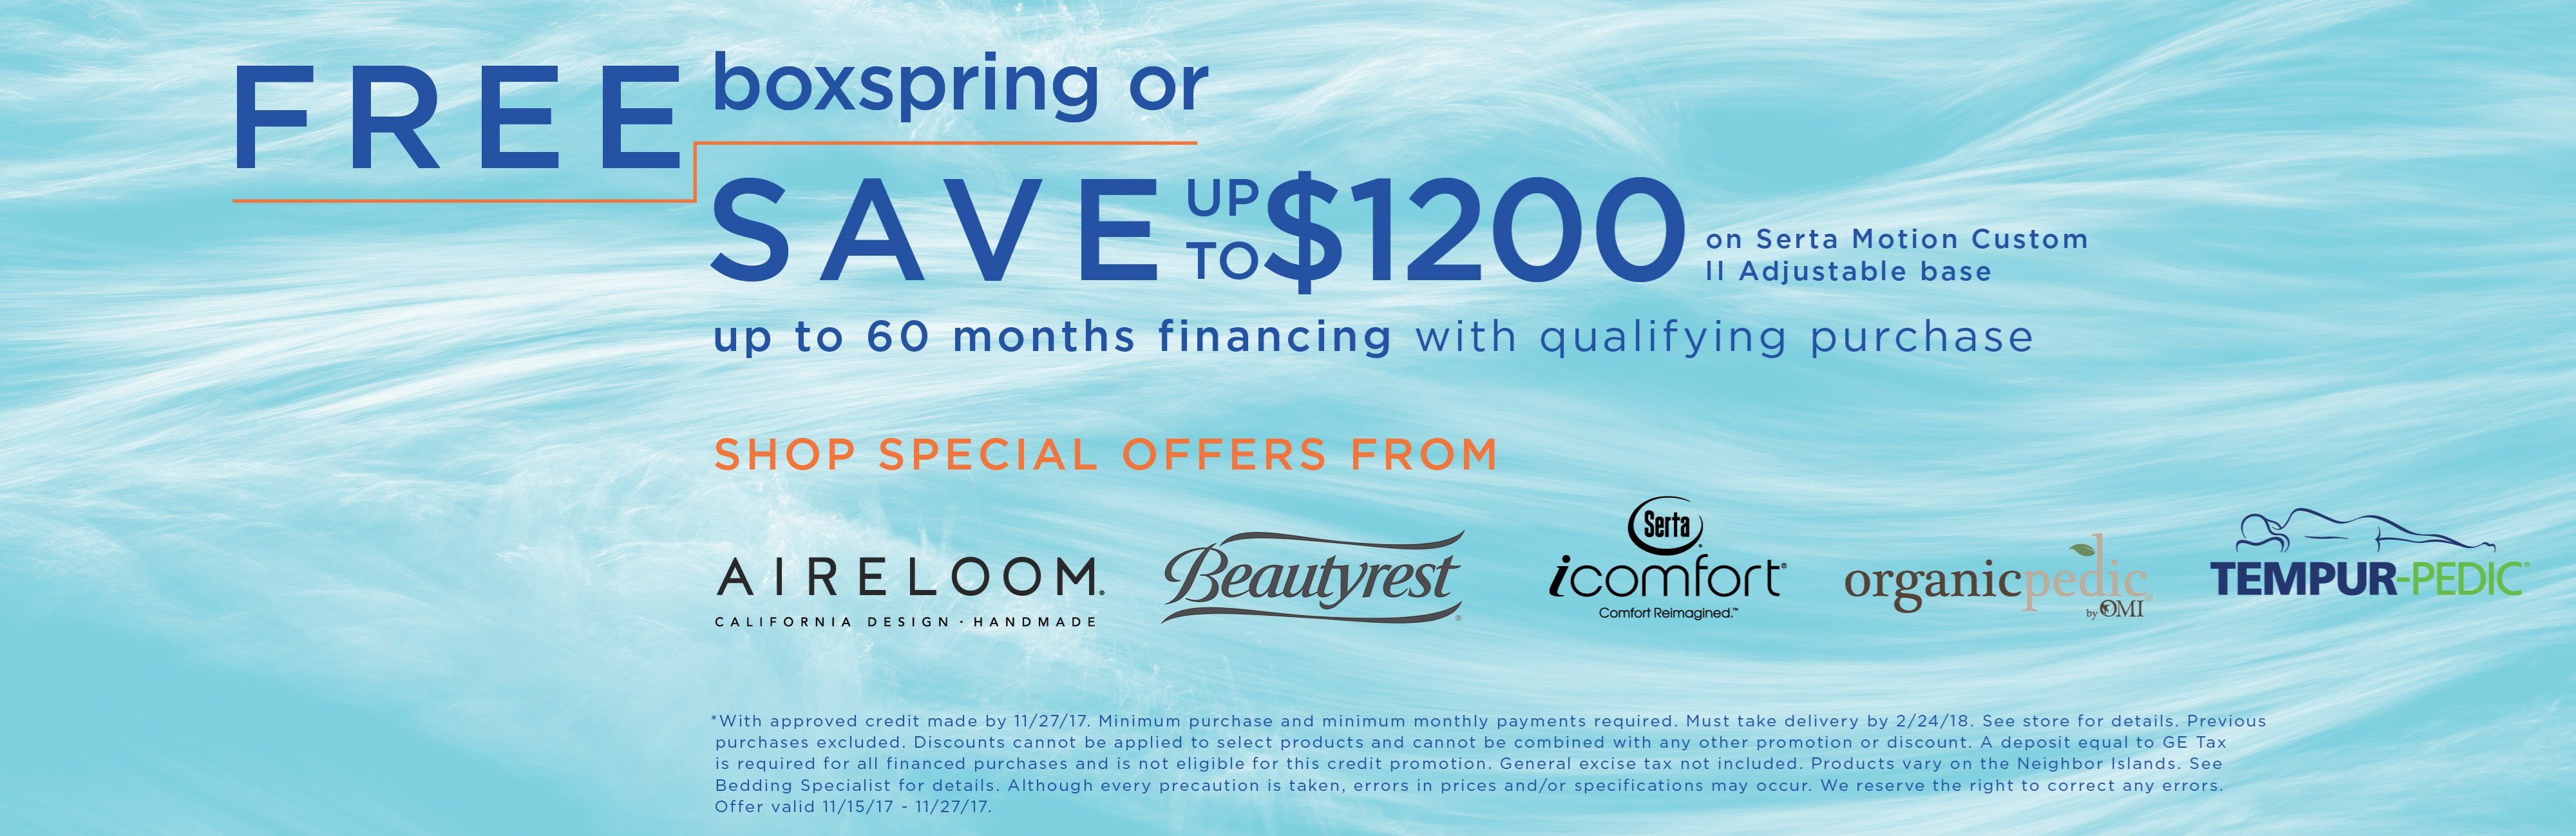 Free boxspring or save on Serta Motion Custom II base; special financing available. See store for details.